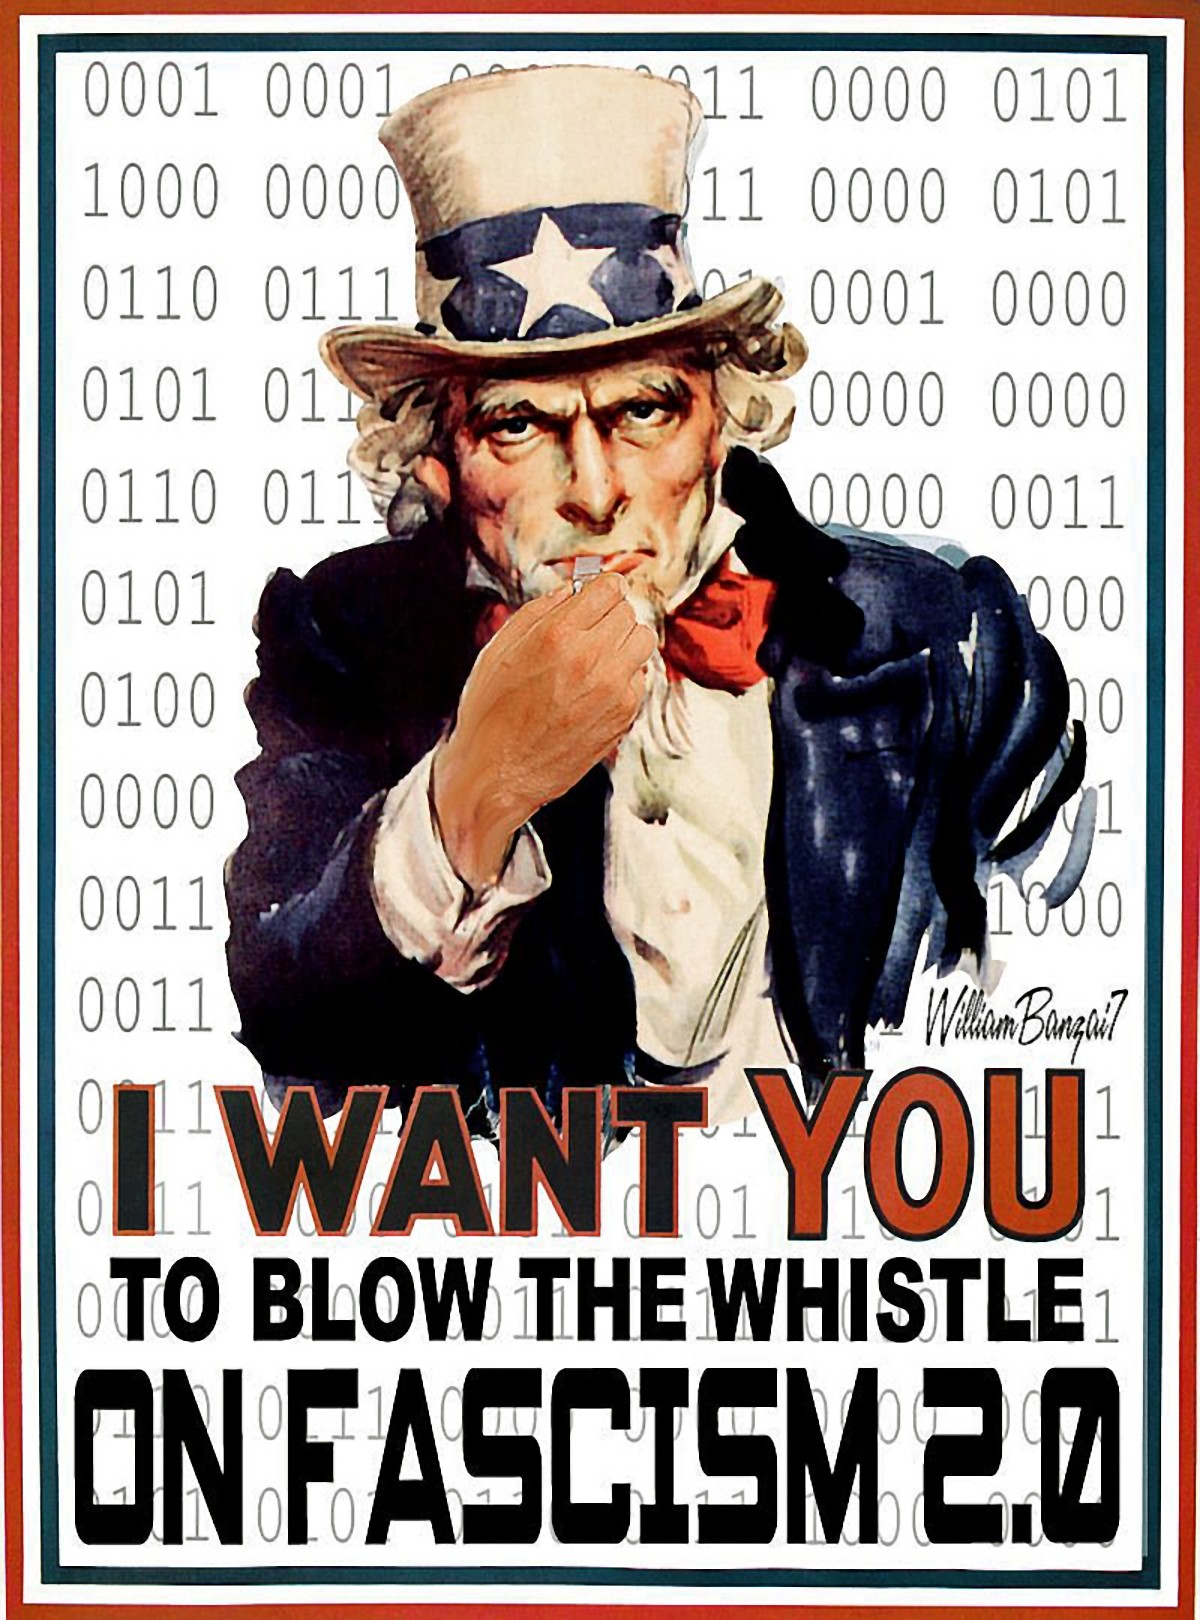 00 Uncle Sam. I Want You to Blow the Whistle on Fascism. 06.07.13